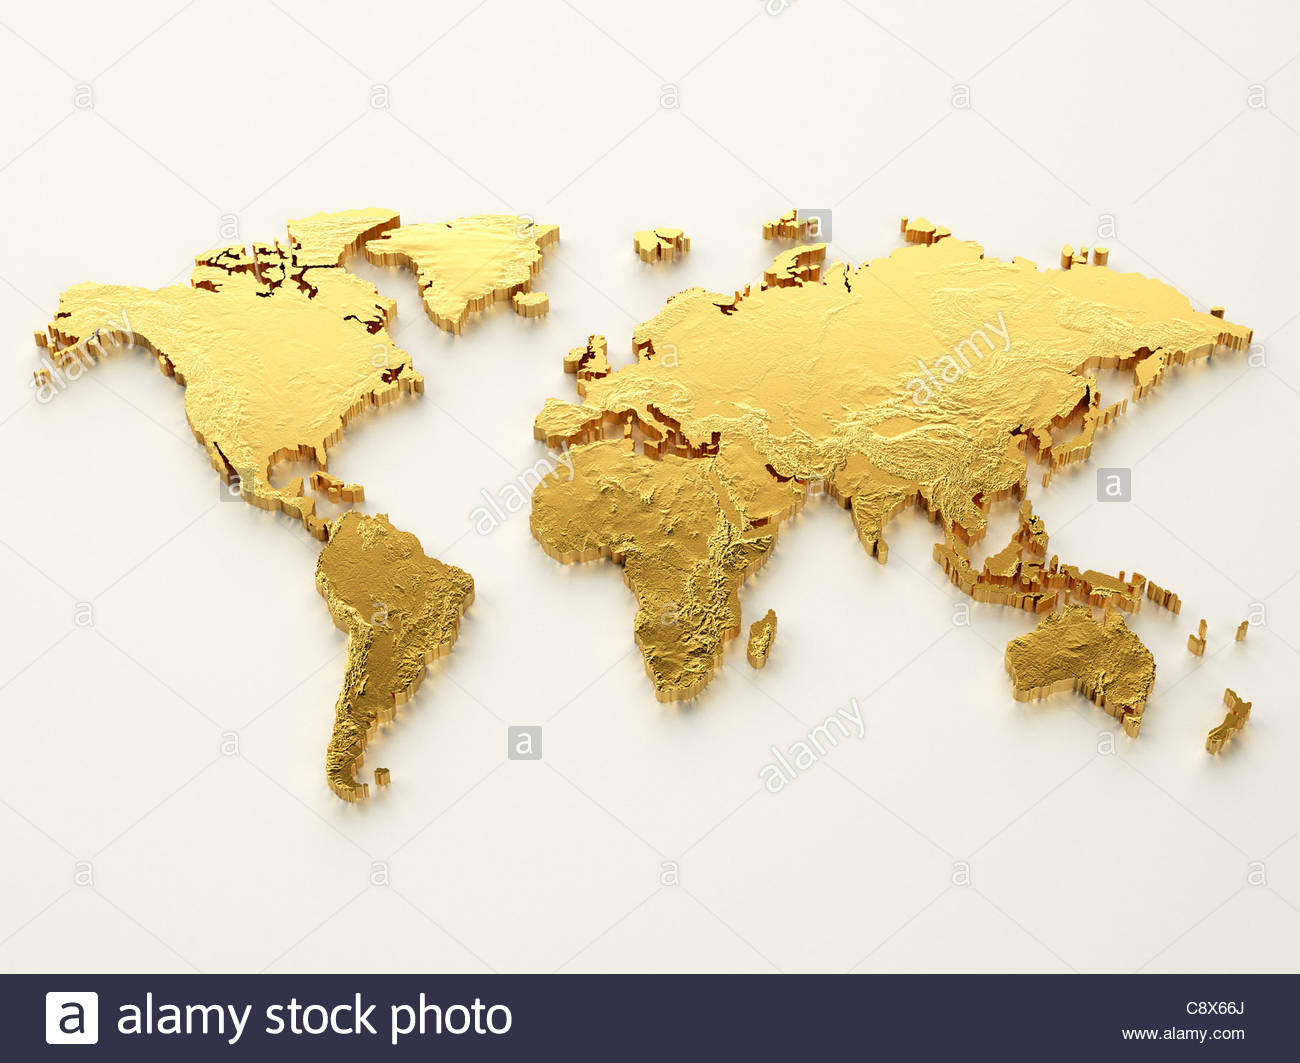 Gold world map on white background Stock Photo 39913626 Alamy